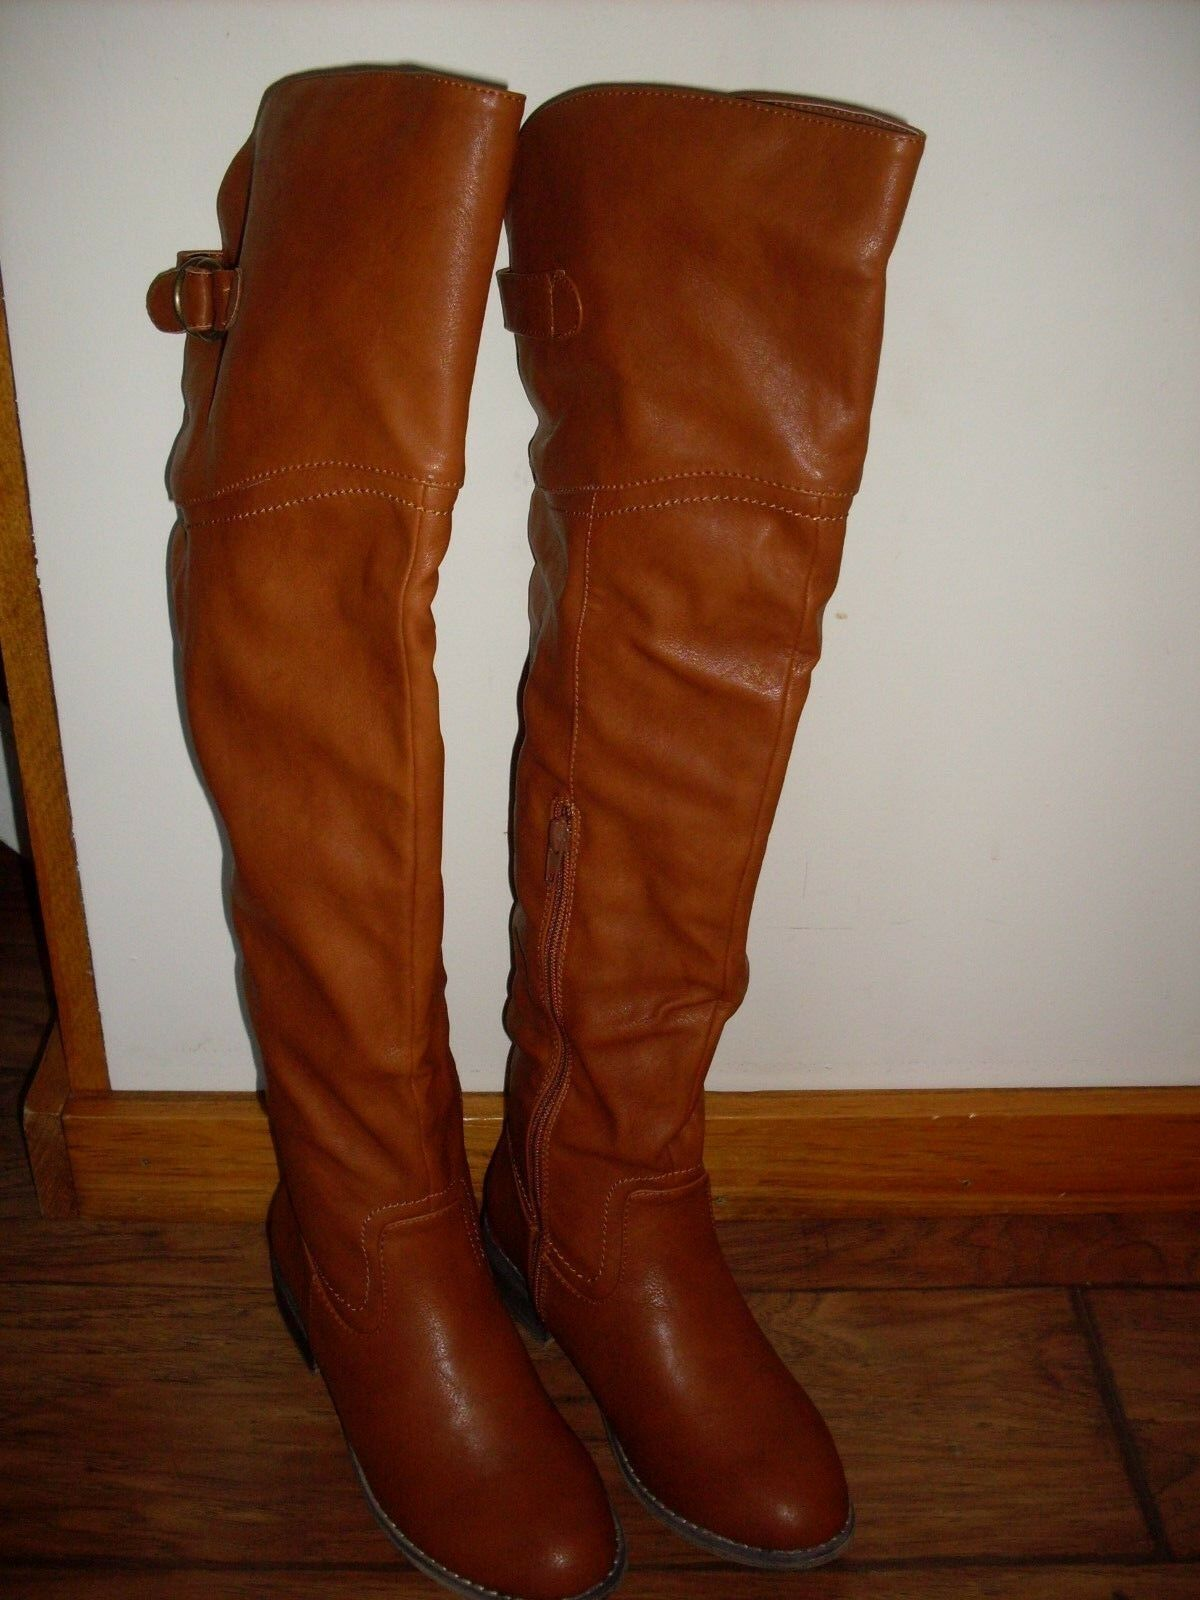 Women's Olivia Miller Over Knee Boots Size 6 NEW